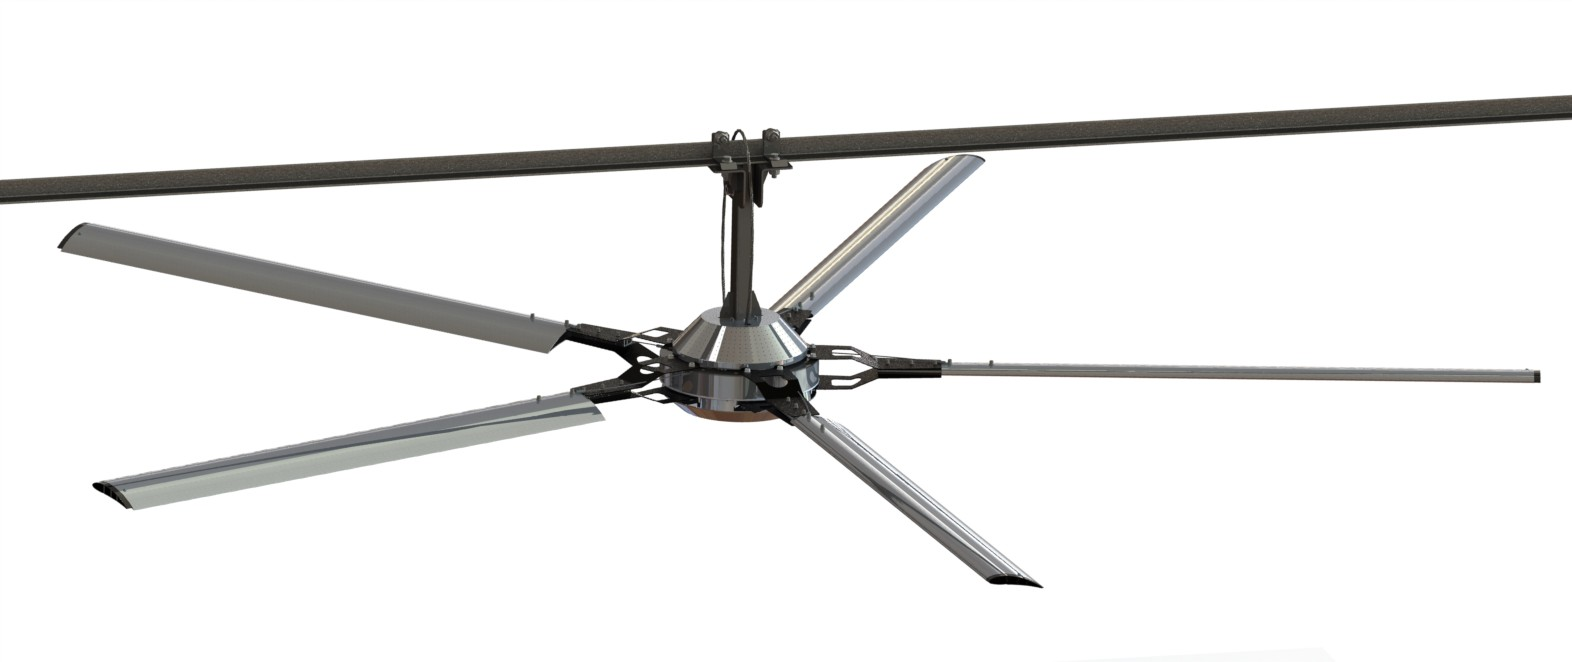 Epoch HVLS 12-ft Fan